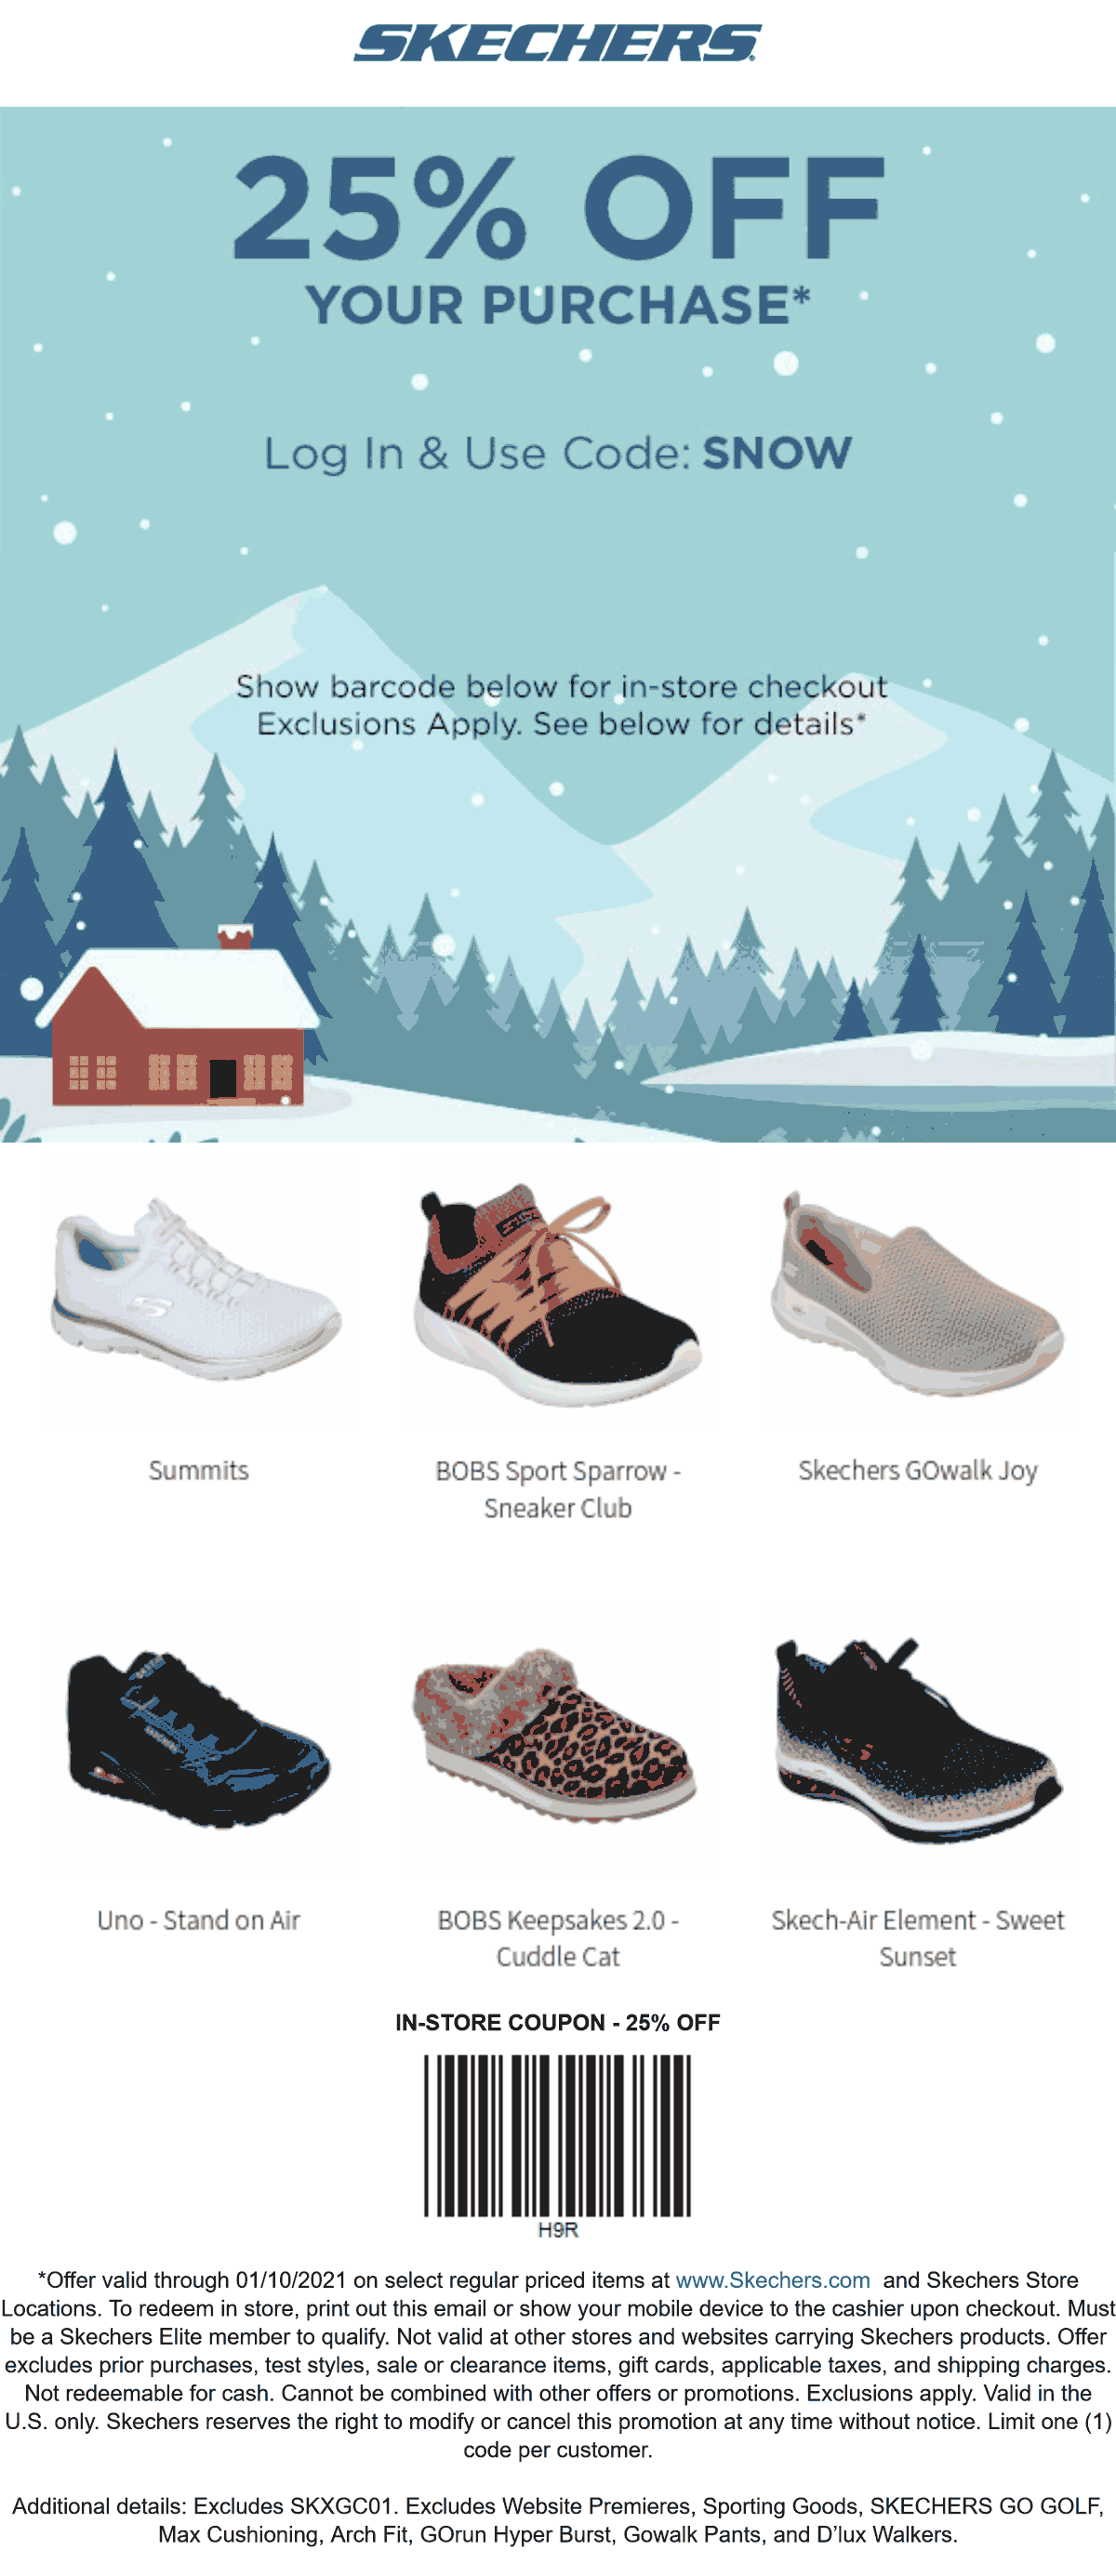 Skechers stores Coupon  25% off today at Skechers, or online via promo code SNOW #skechers